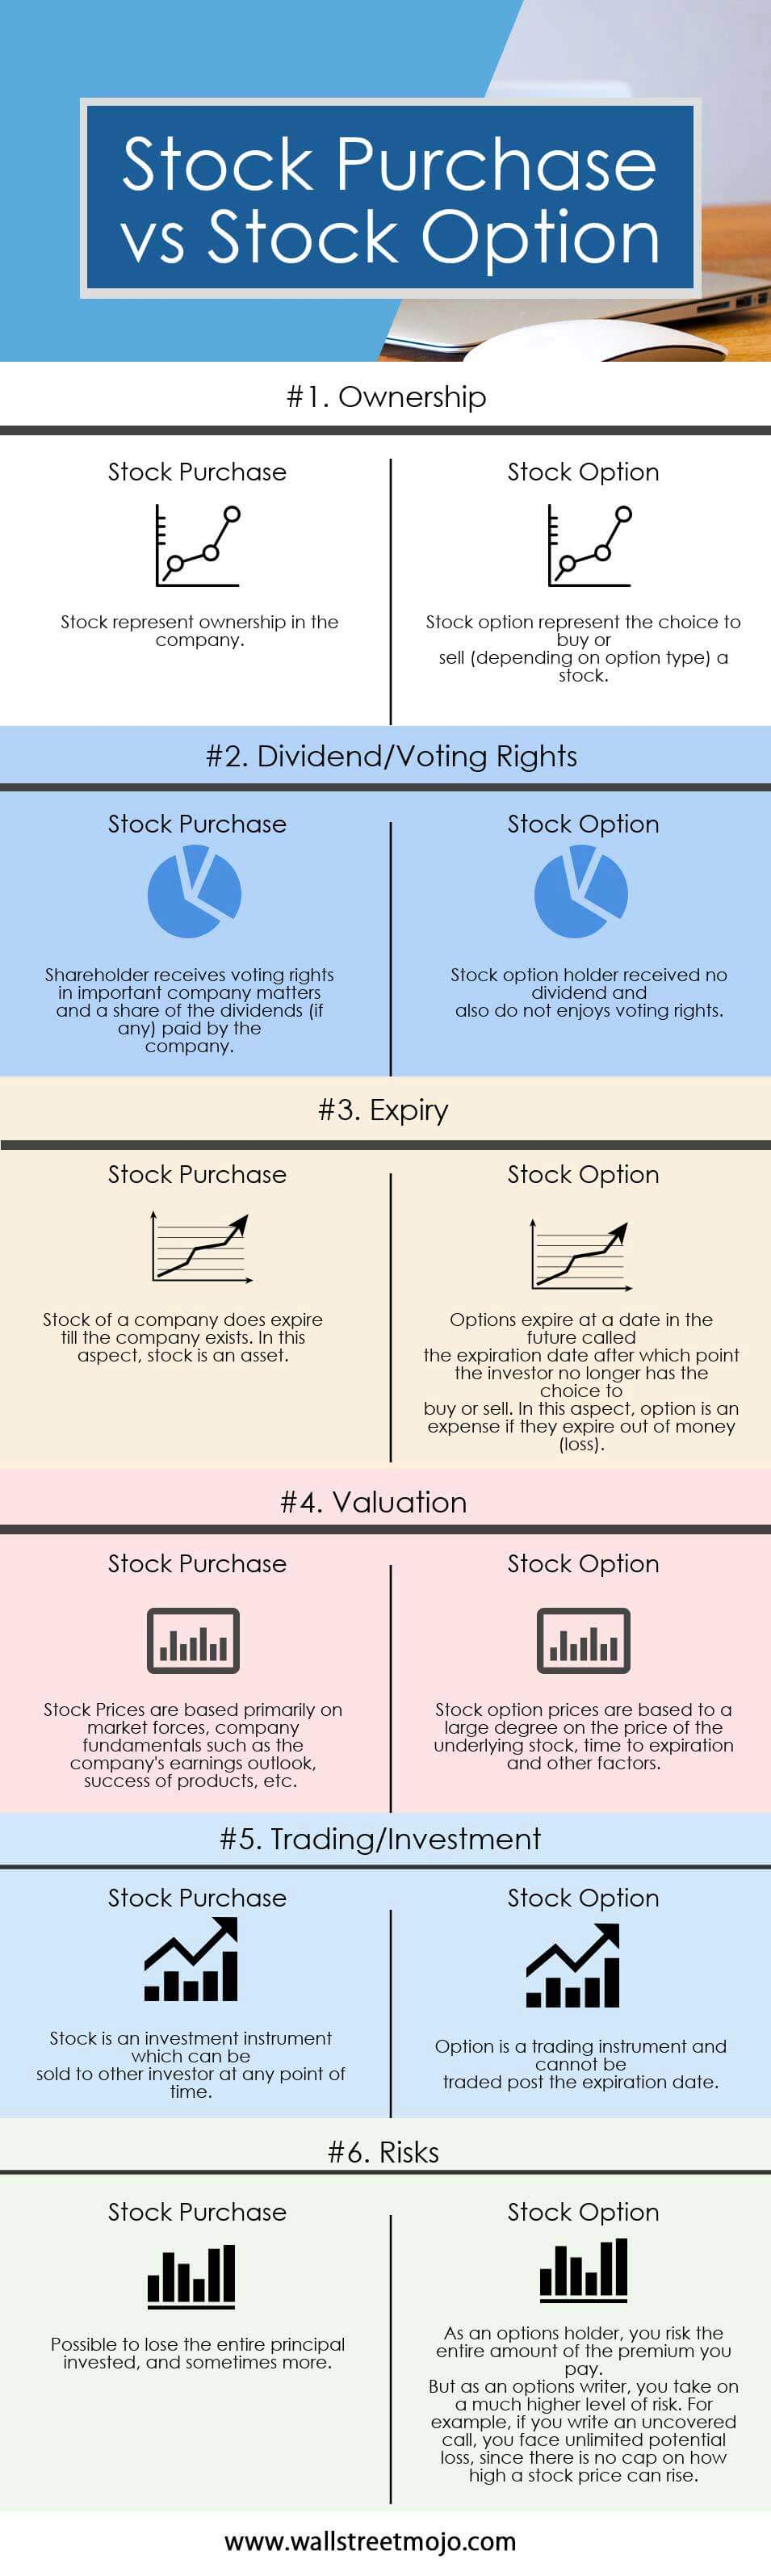 Stock options if company is purchased